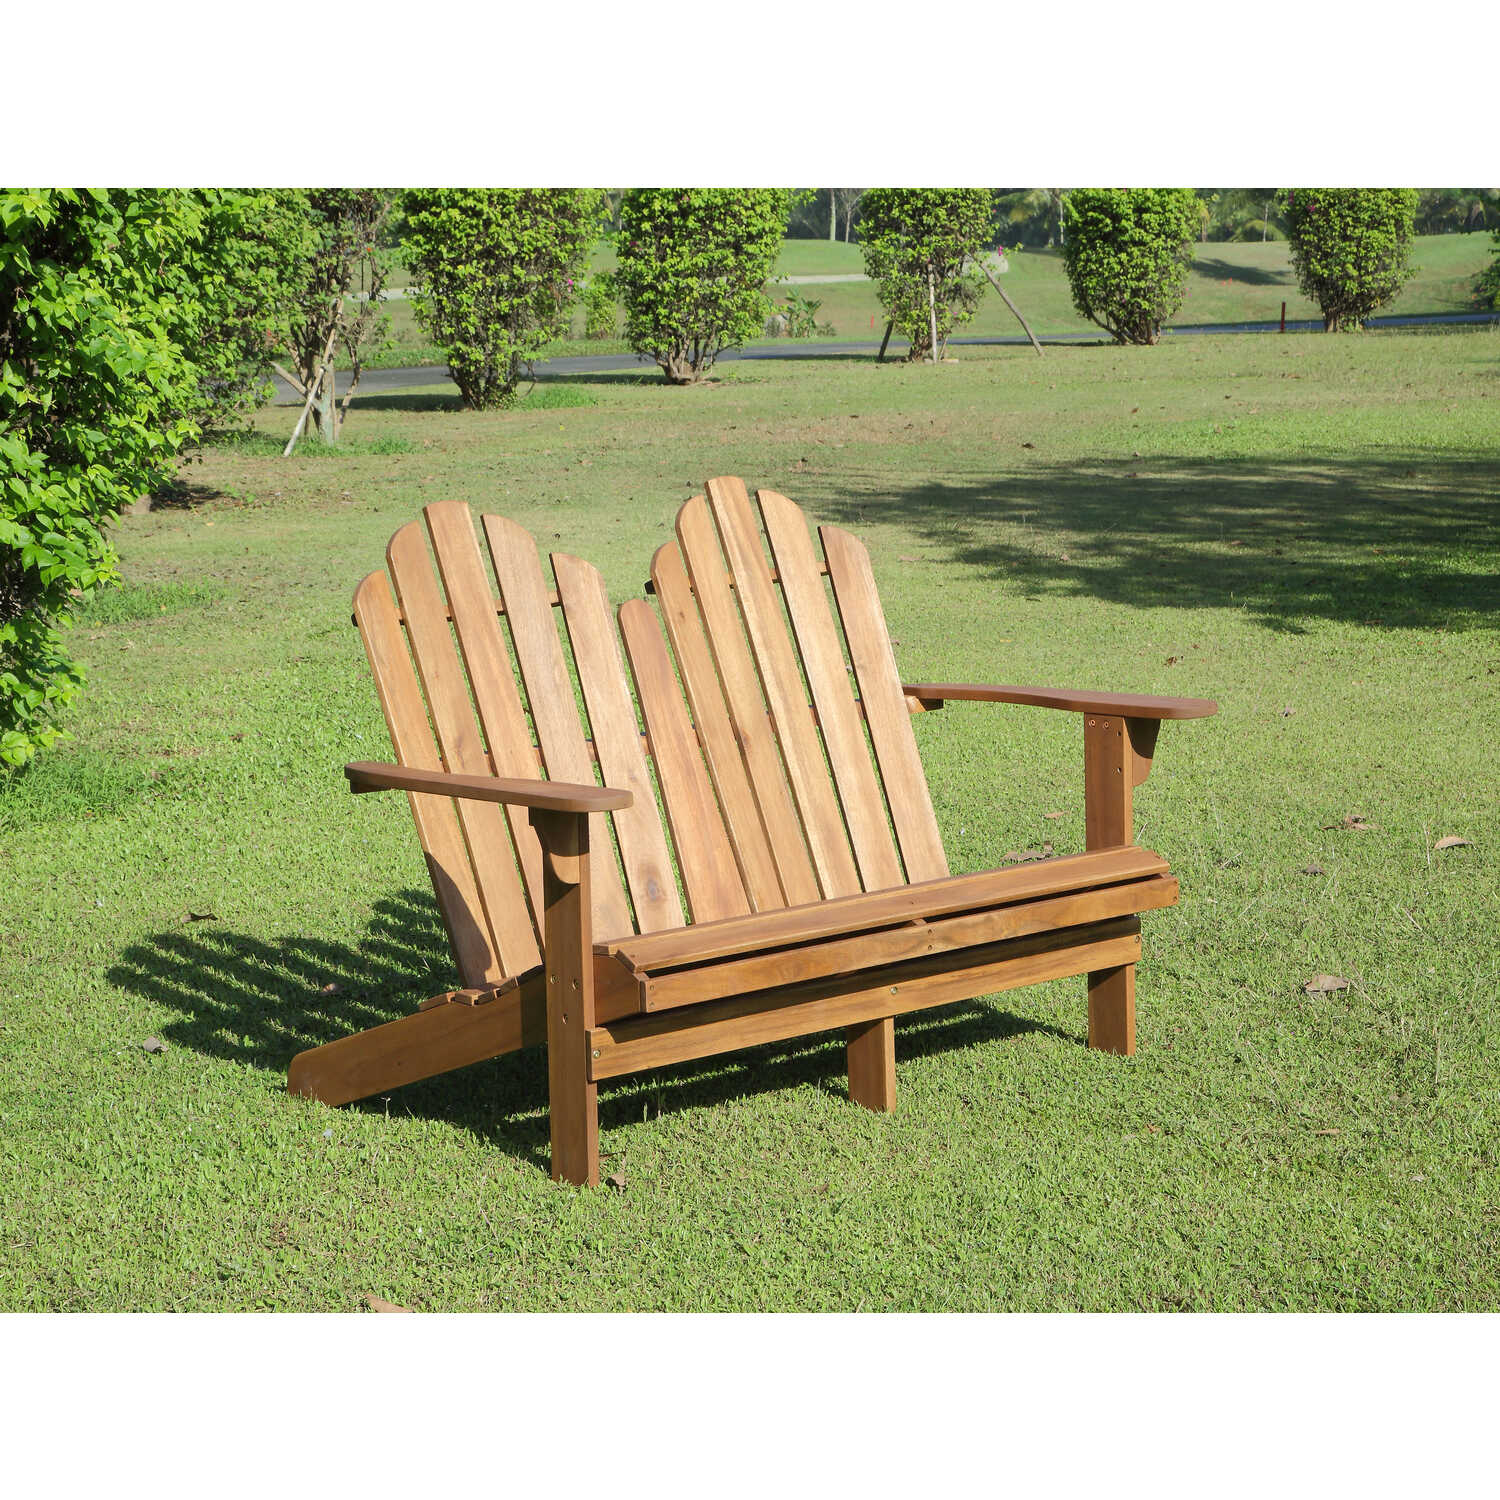 Linon Home Decor  Tahoe  Adirondack  Patio Bench  Wood  37.99 in. H x 52.36 in. L x 37.4 in. D